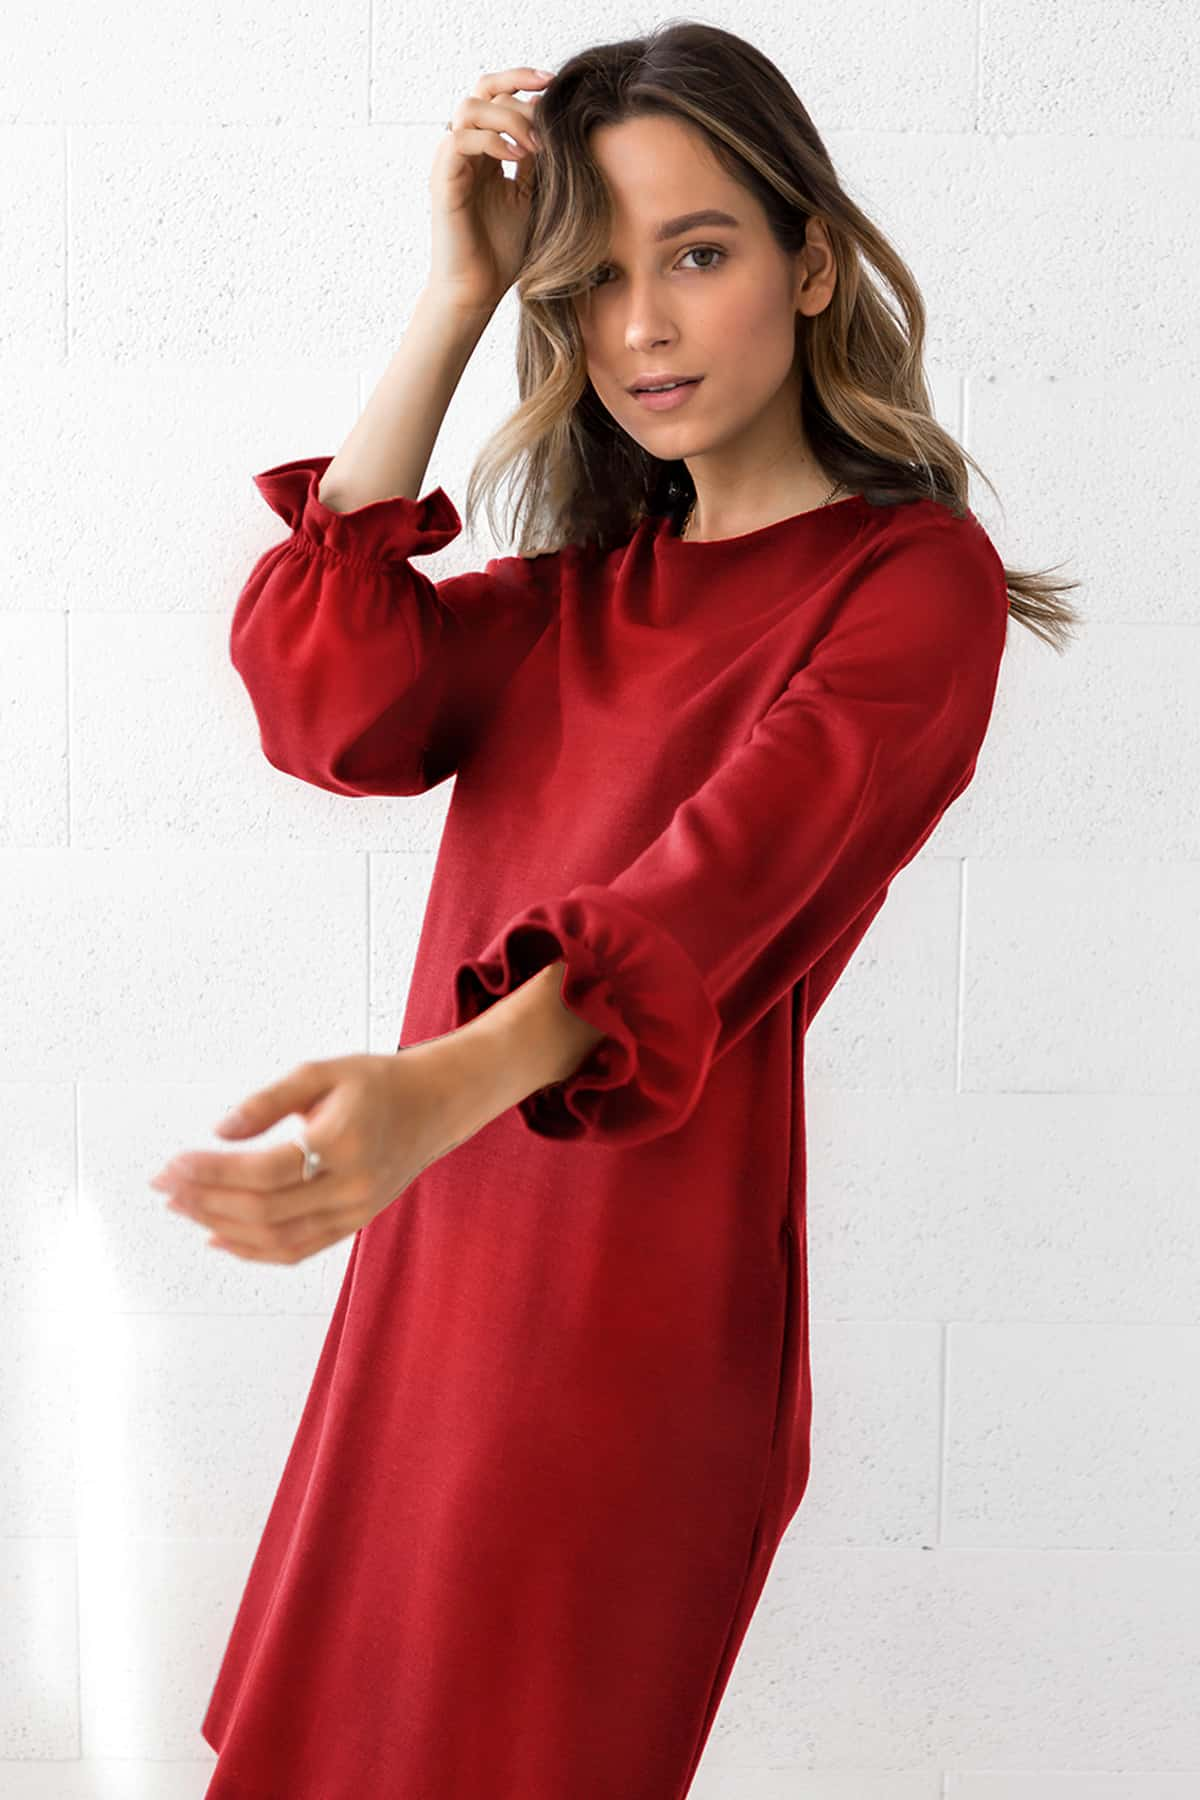 RED WOOL DRESS ALEXIS